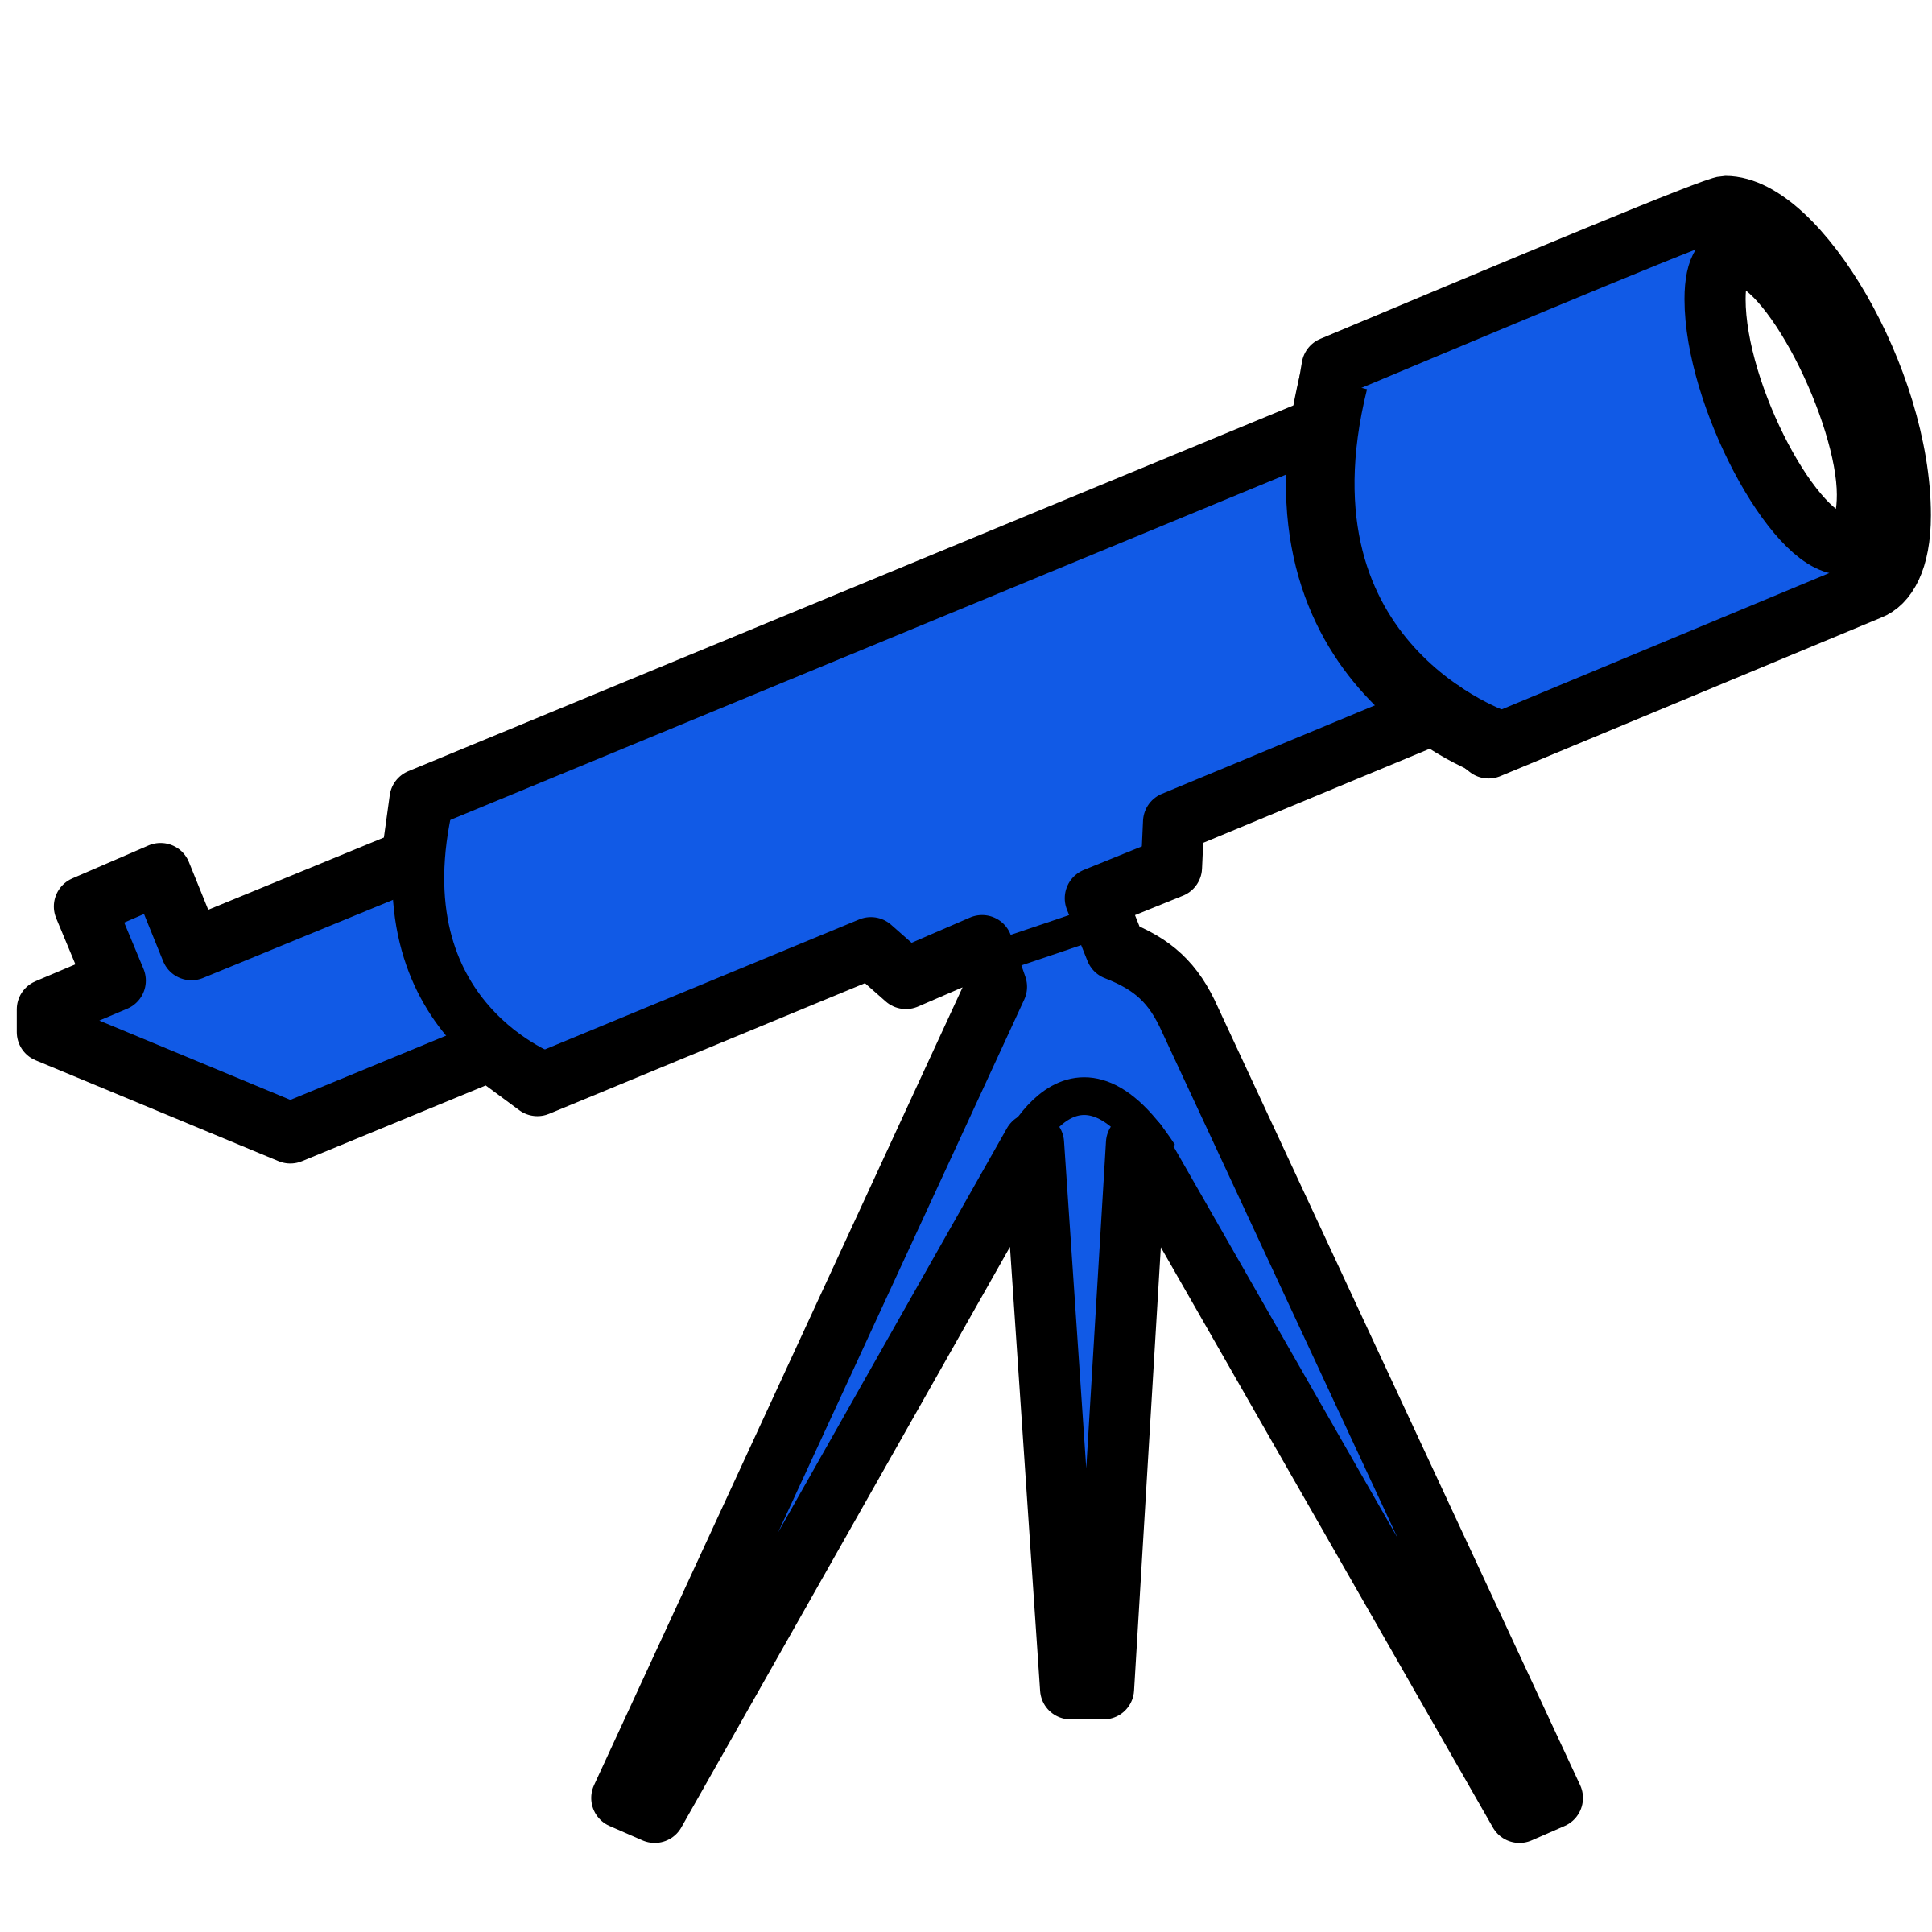 banner free download Telescope clipart. Blue big image png.